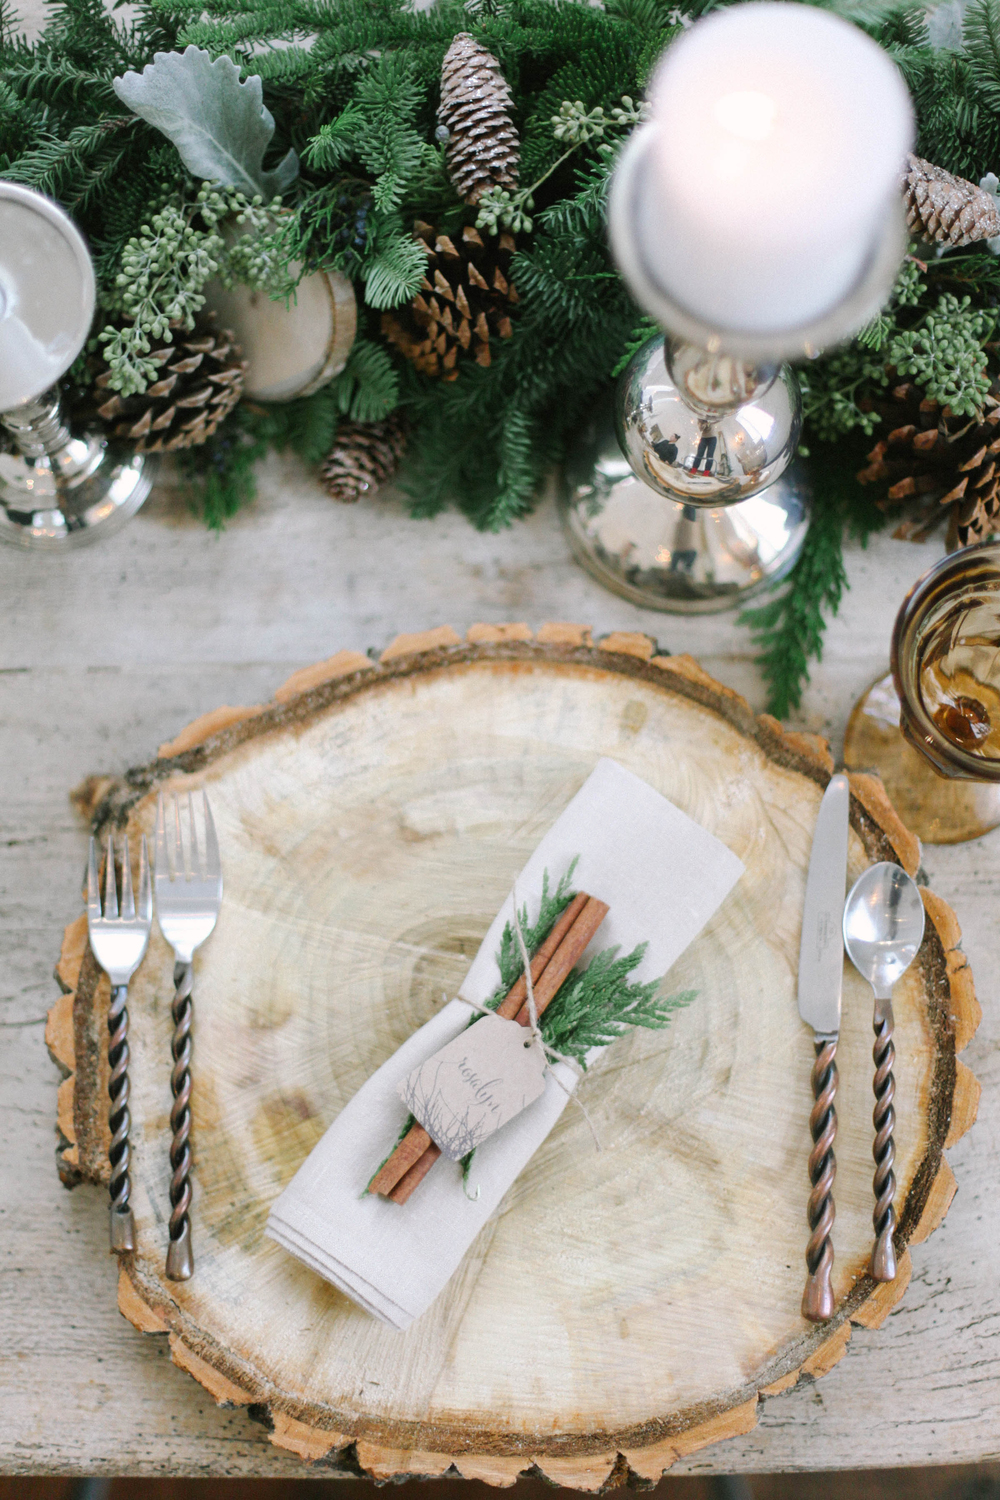 5 Elegant Christmas Table Décor Ideas 01 Christmas Table Décor 5 Elegant Christmas Table Décor Ideas 5 Elegant Christmas Table D  cor Ideas 01